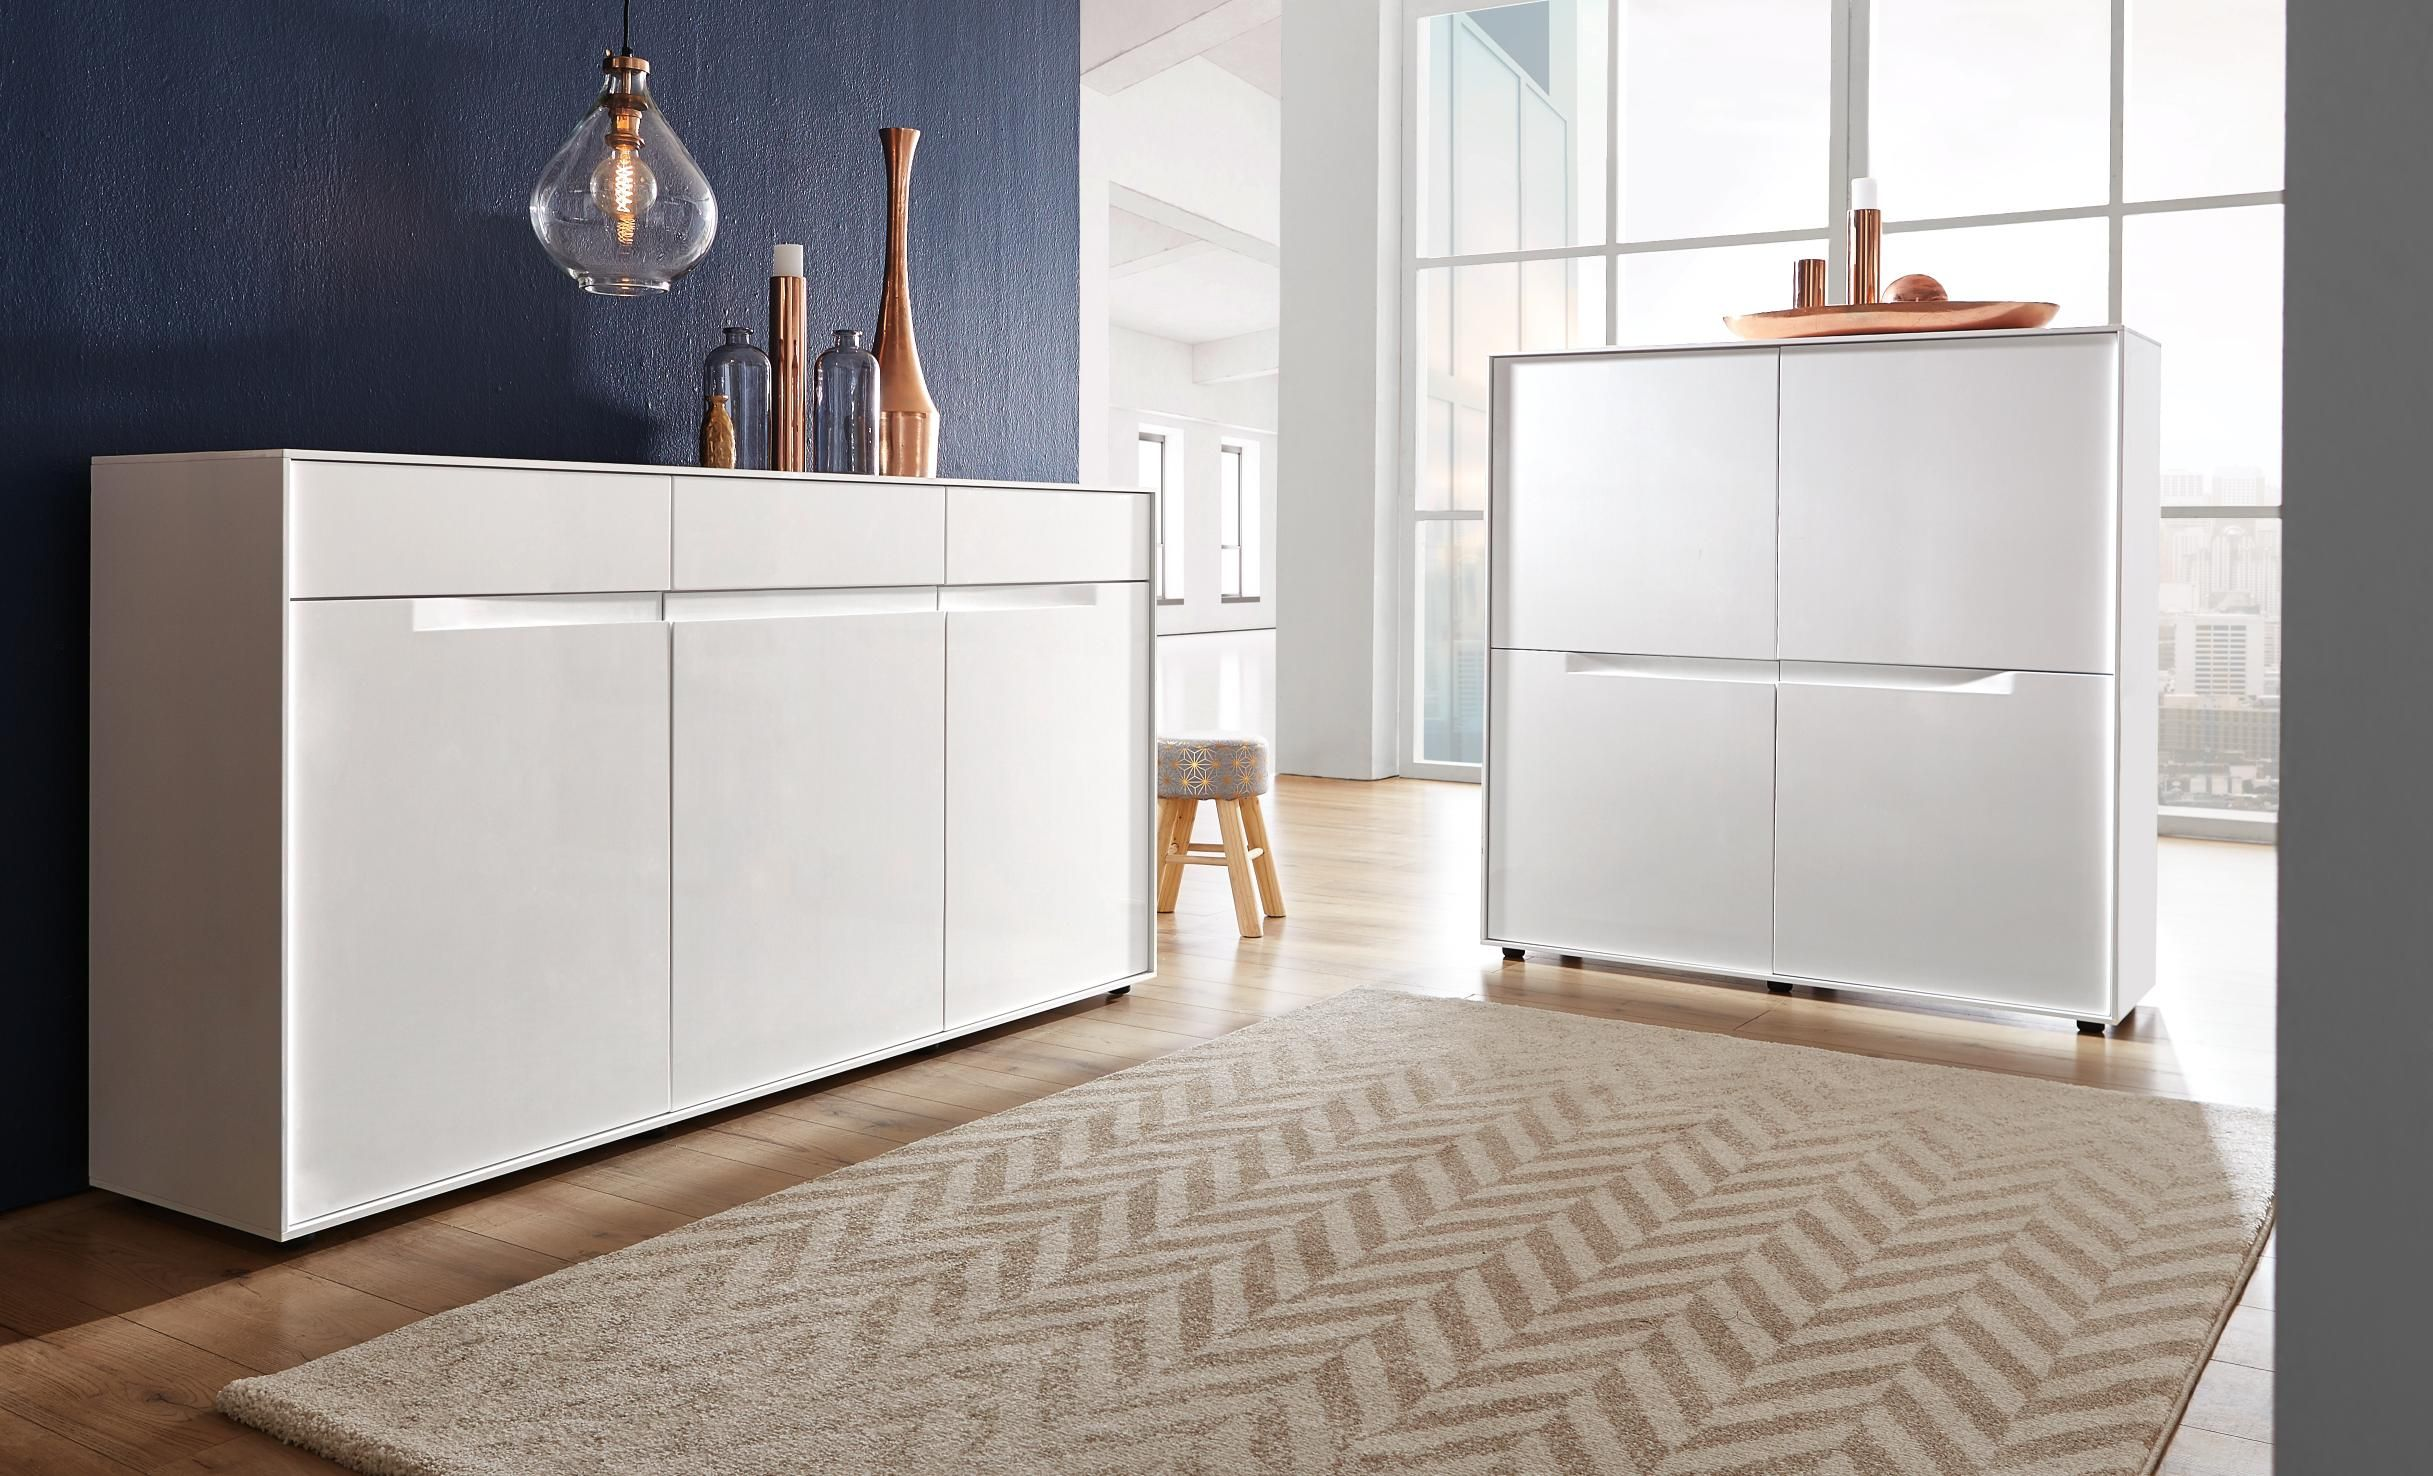 Schlafzimmer Kommode Pinterest Modernes Sideboard In Weiß Mit Intelligentem Soft Close